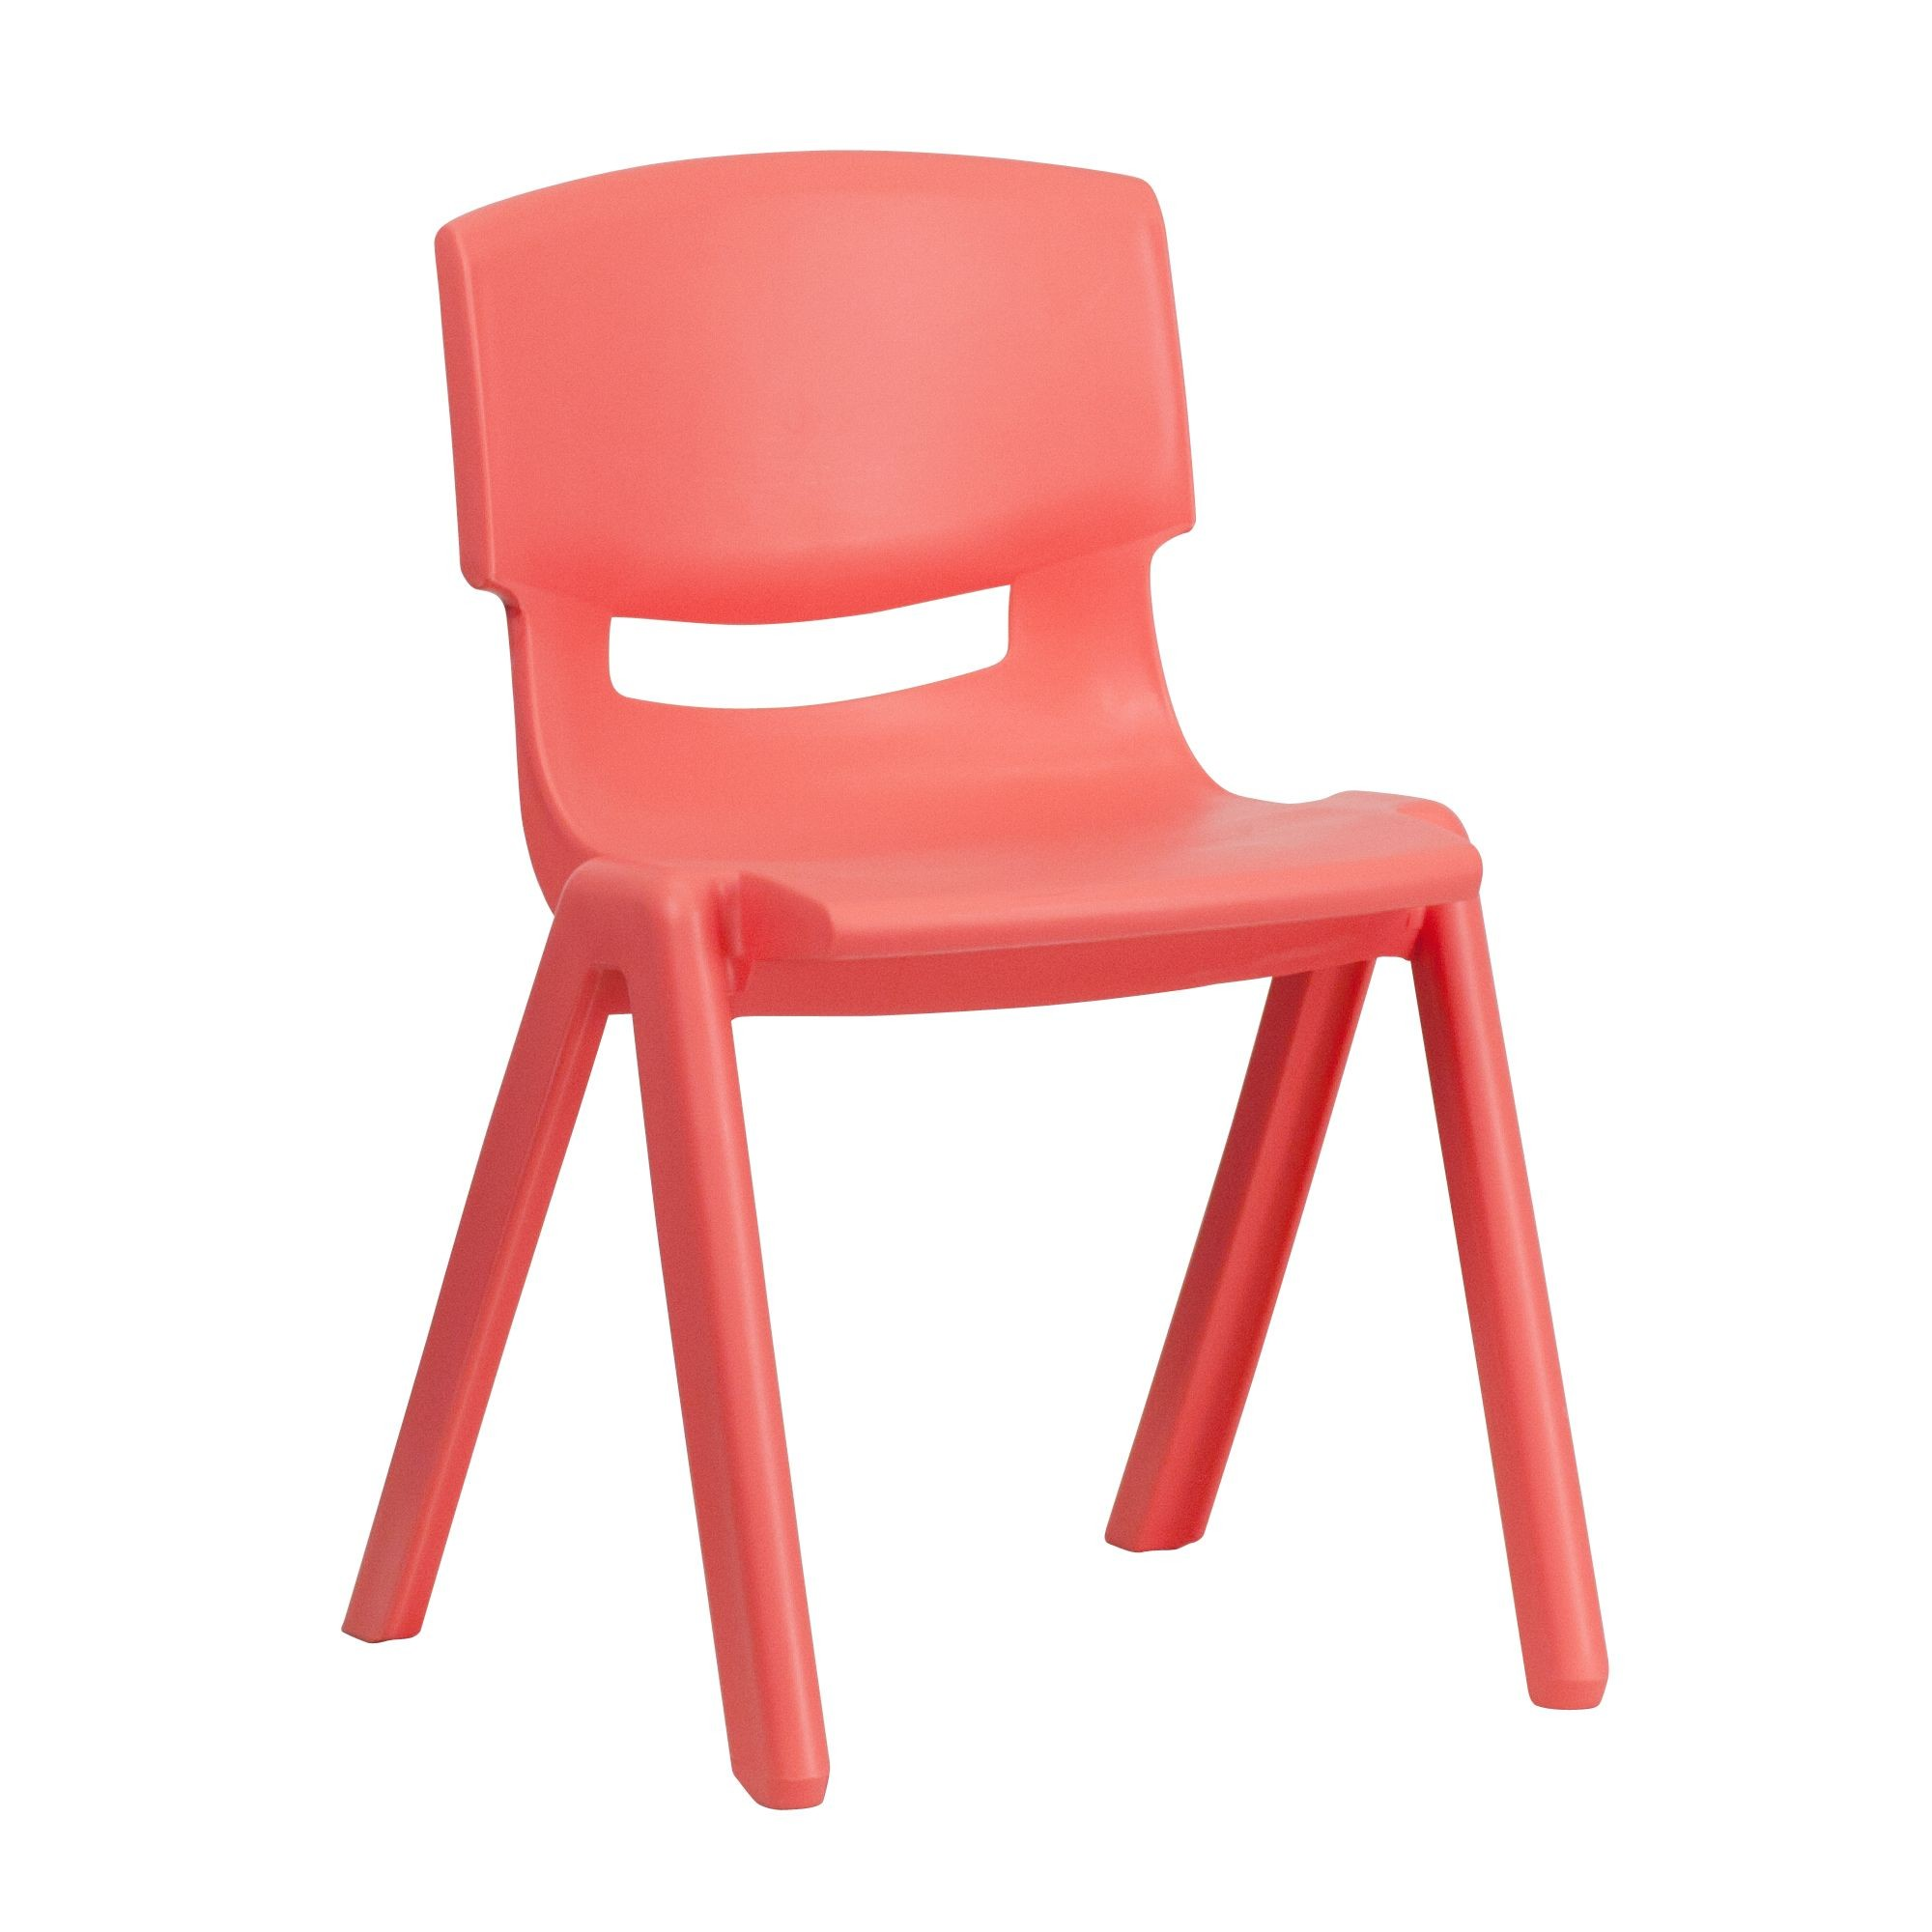 "Flash Furniture YU-YCX-004-RED-GG Red Plastic Stackable School Chair with 13.25"" Seat Height"